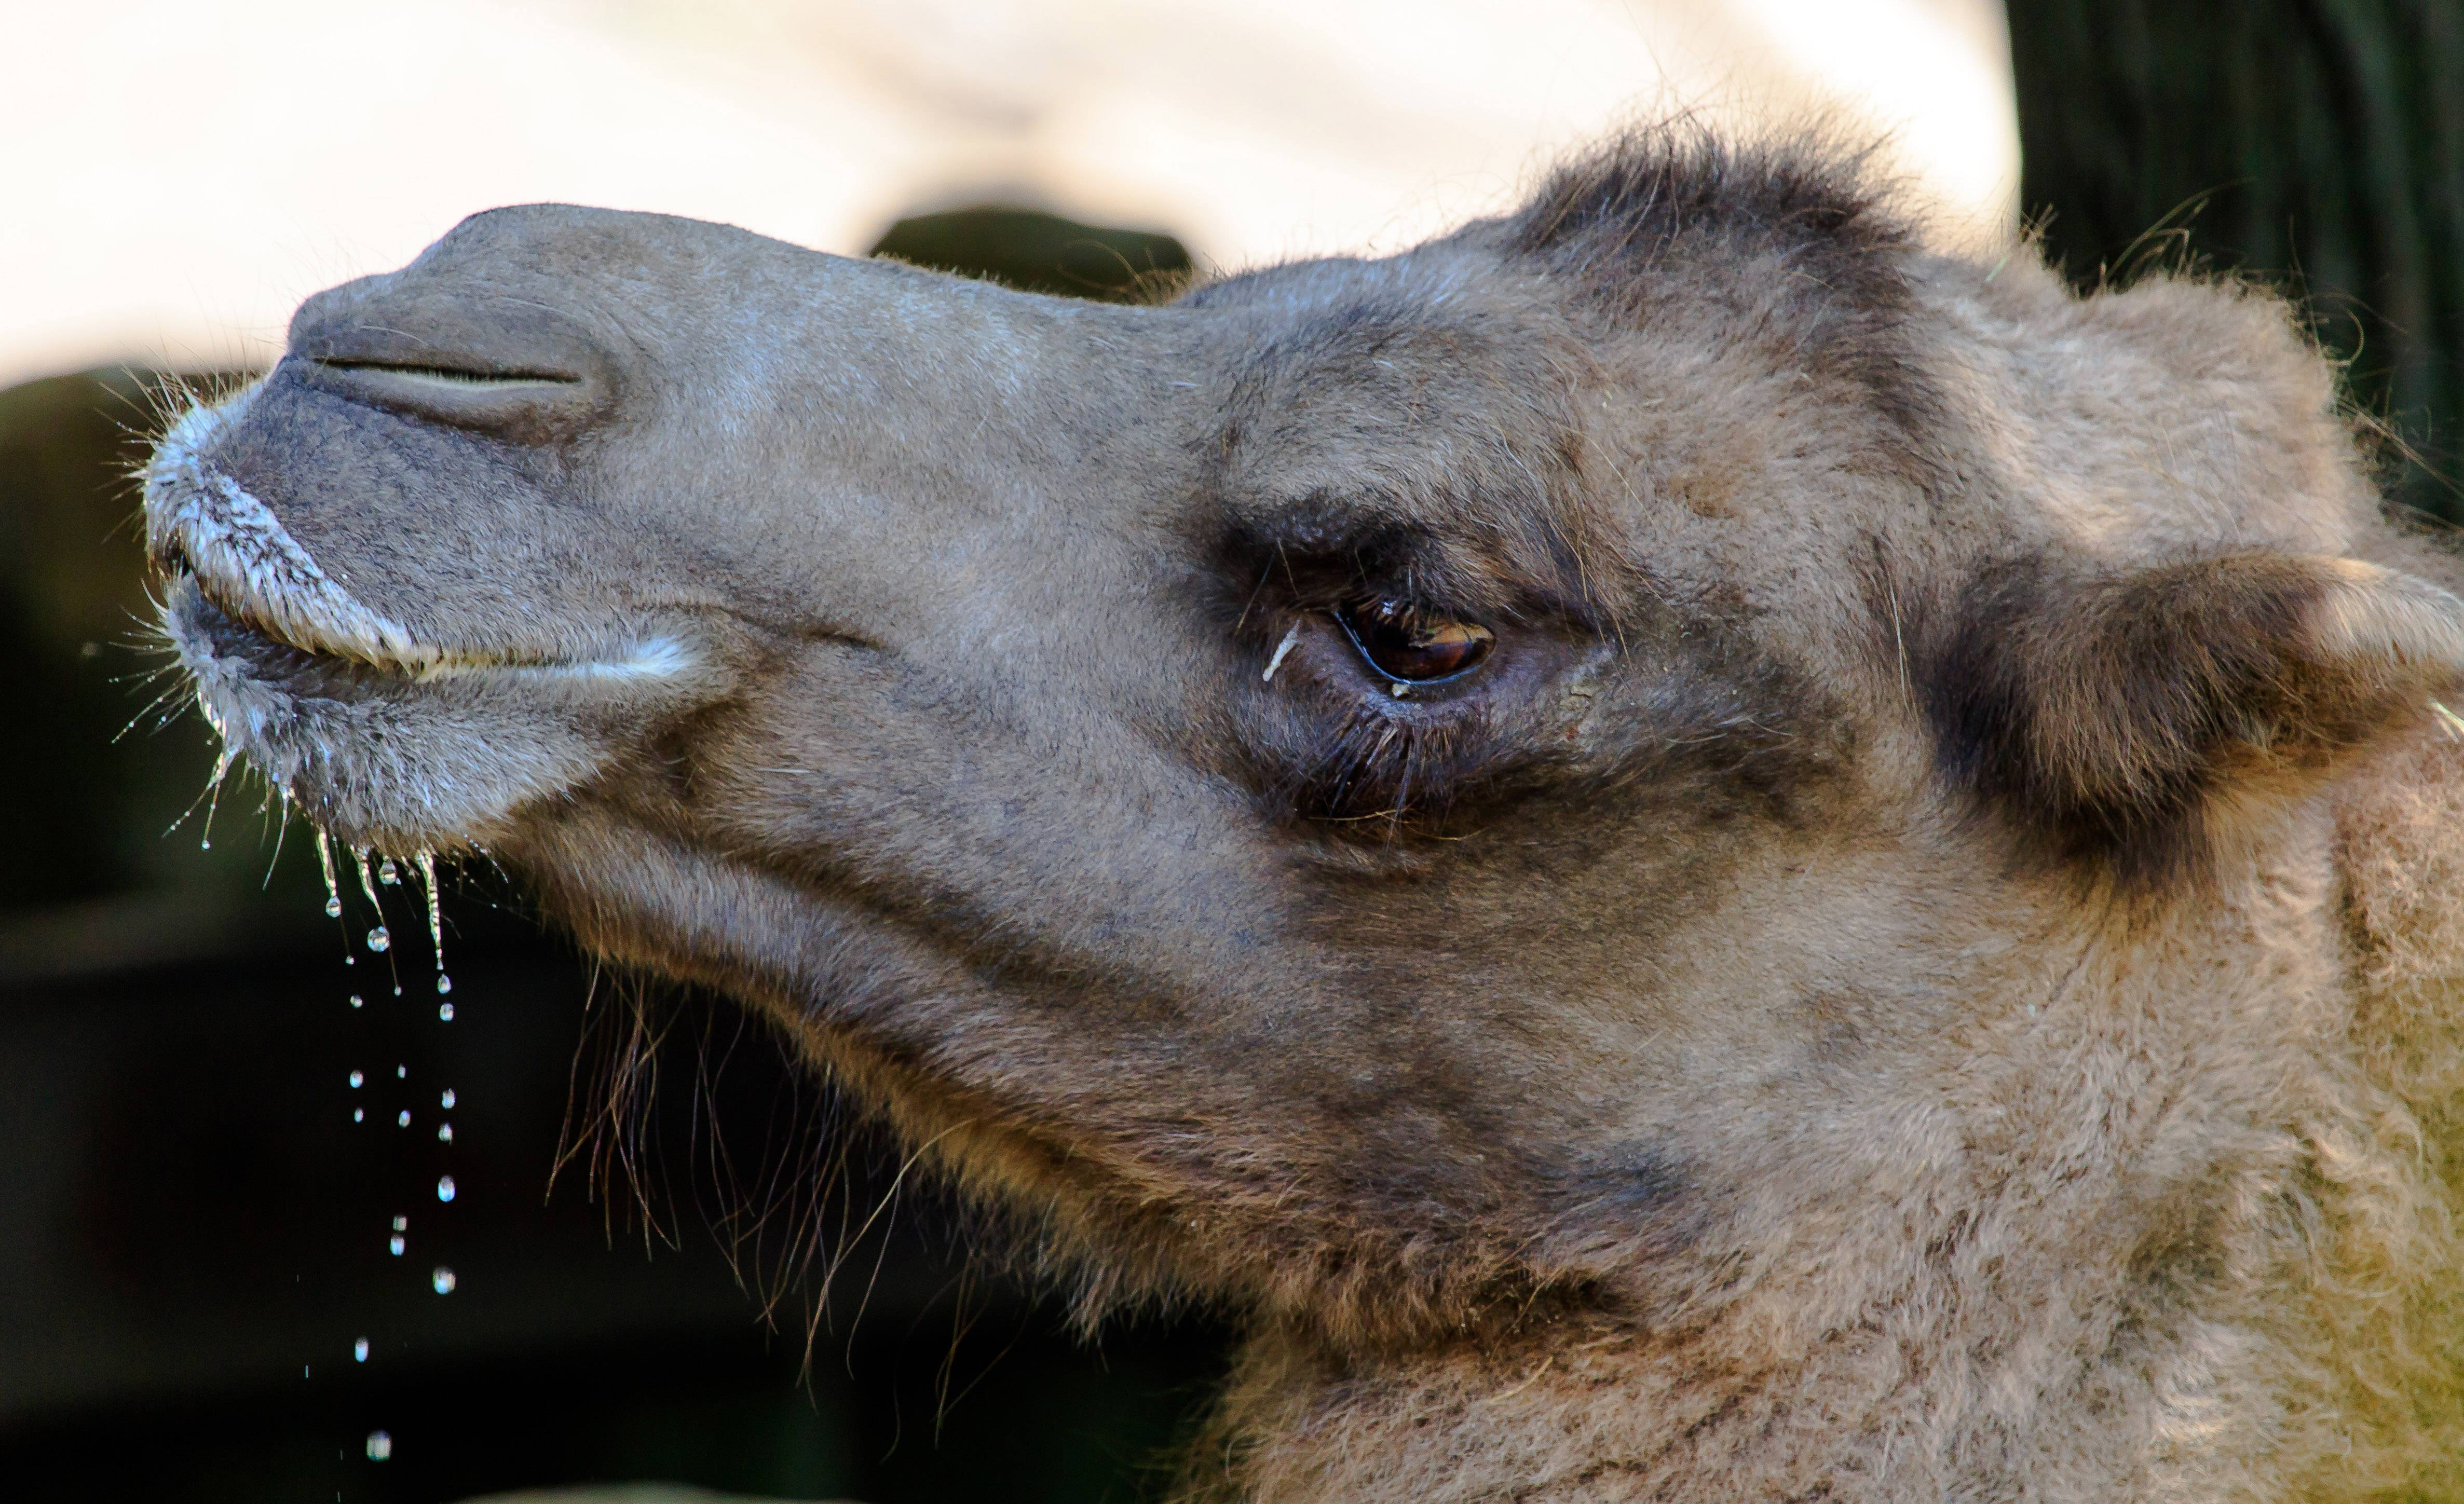 A camel at the Lincoln Park Zoo in Chicago finishes drinking some water on July 17.